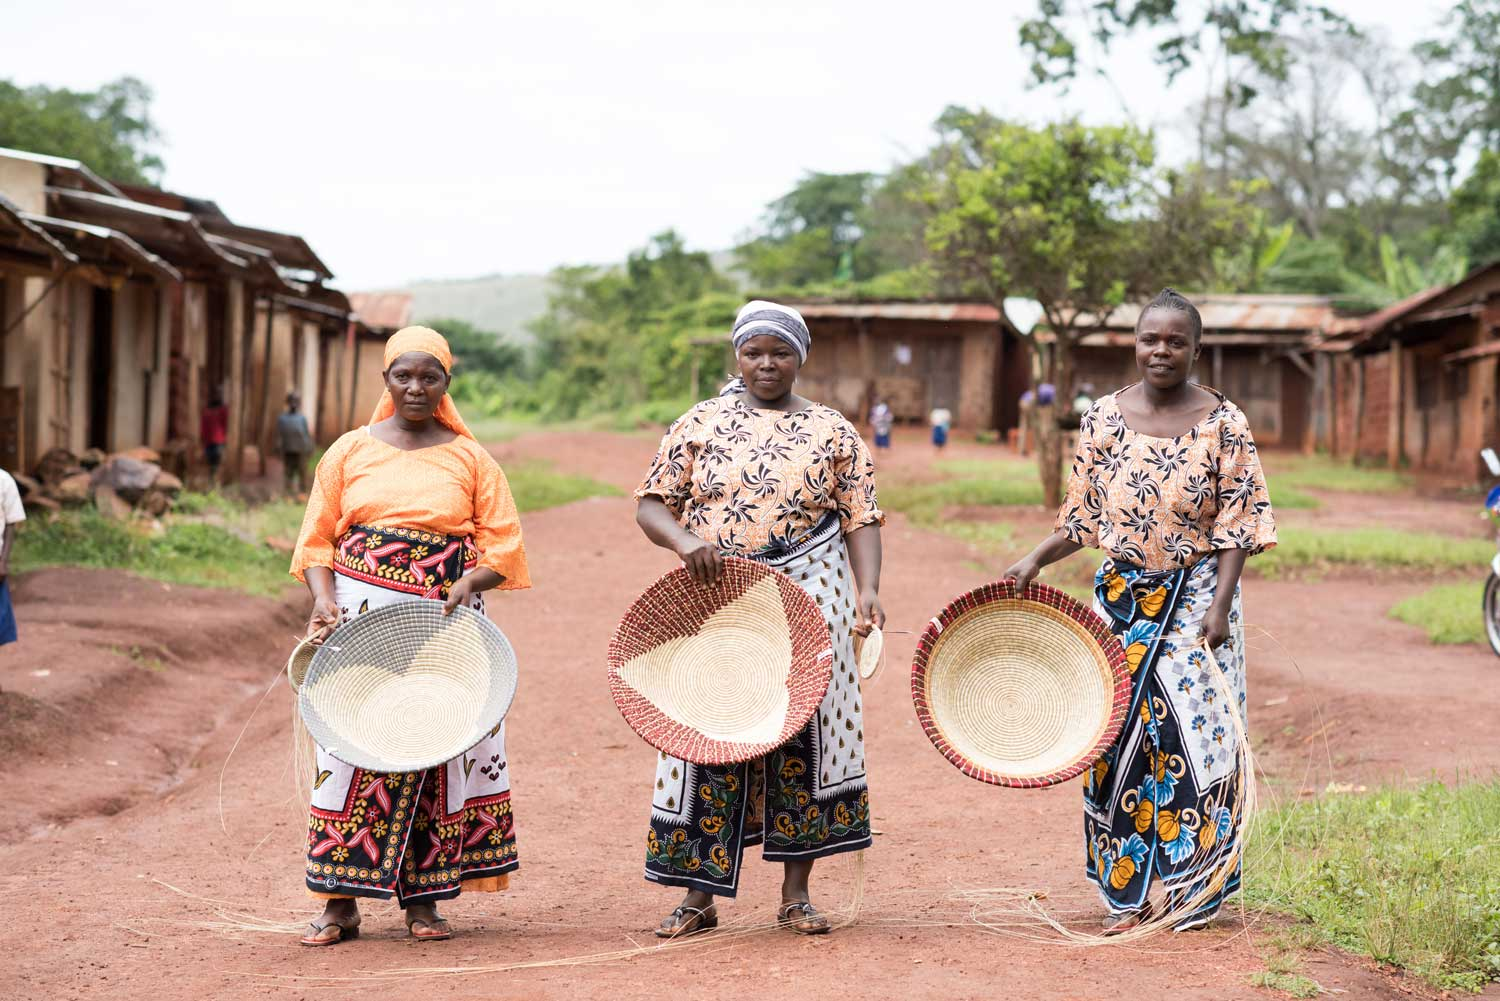 Women artisans holding their bowls